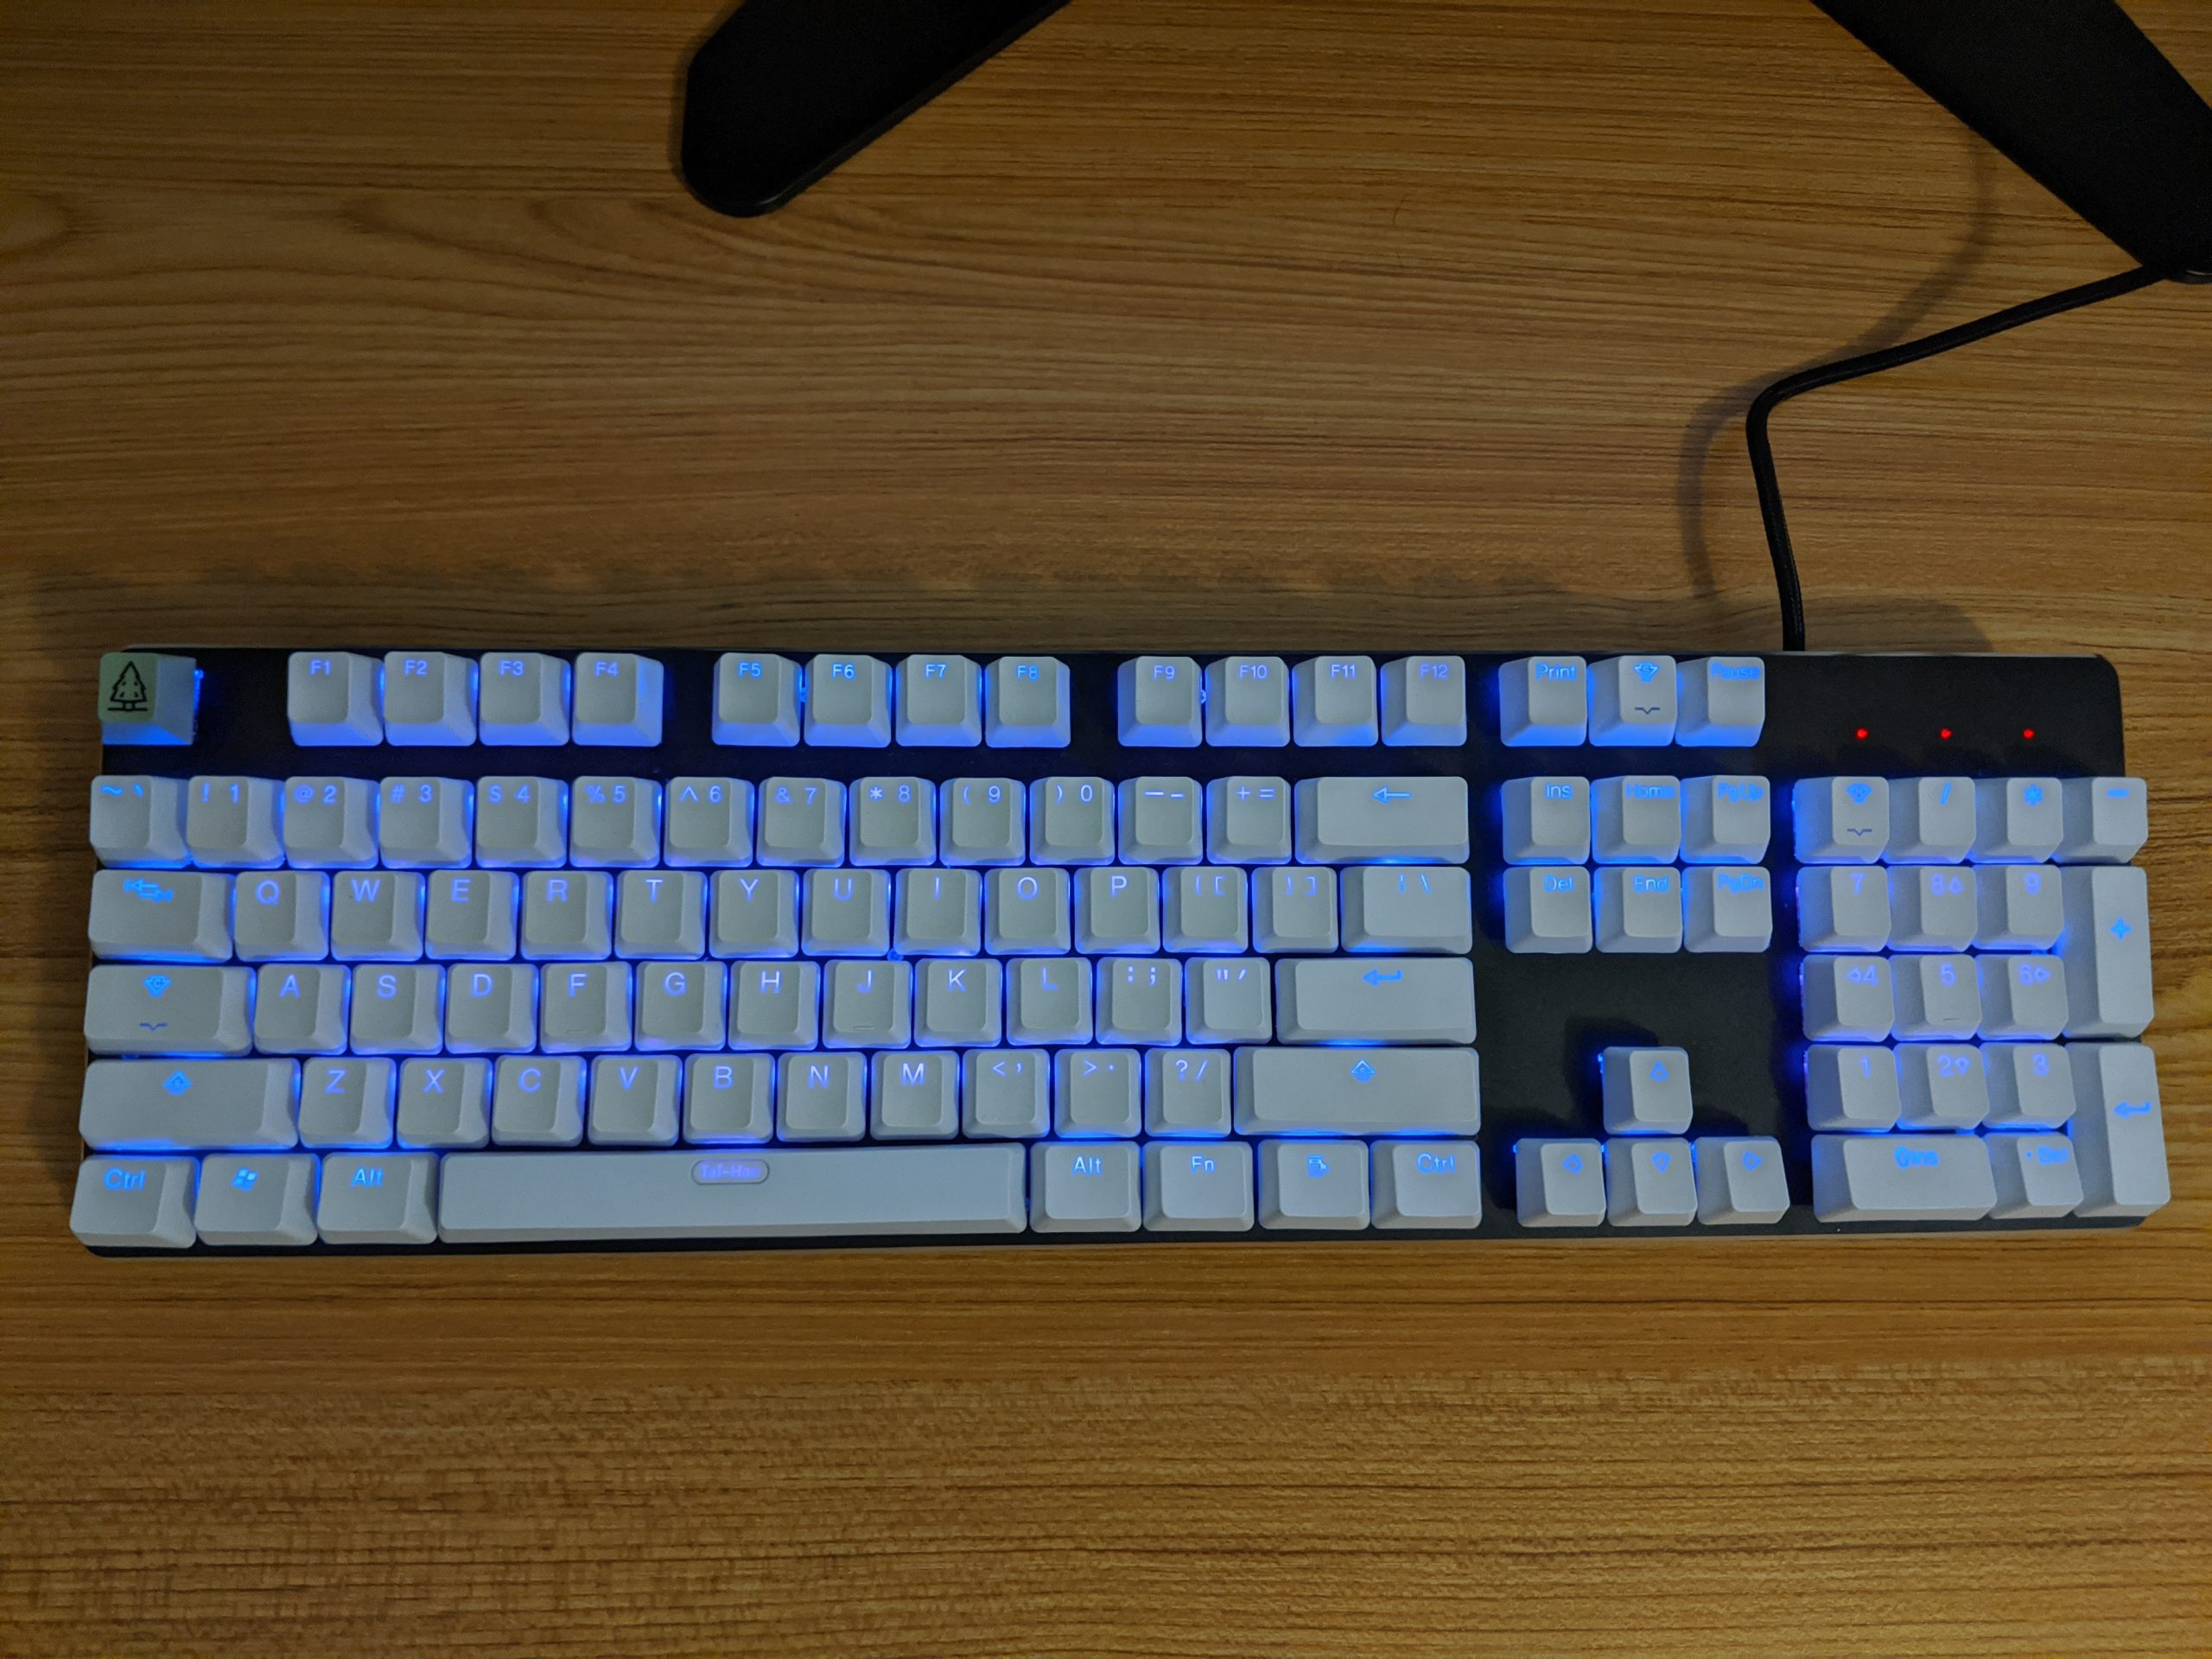 A GMMK with PBT white keycaps.